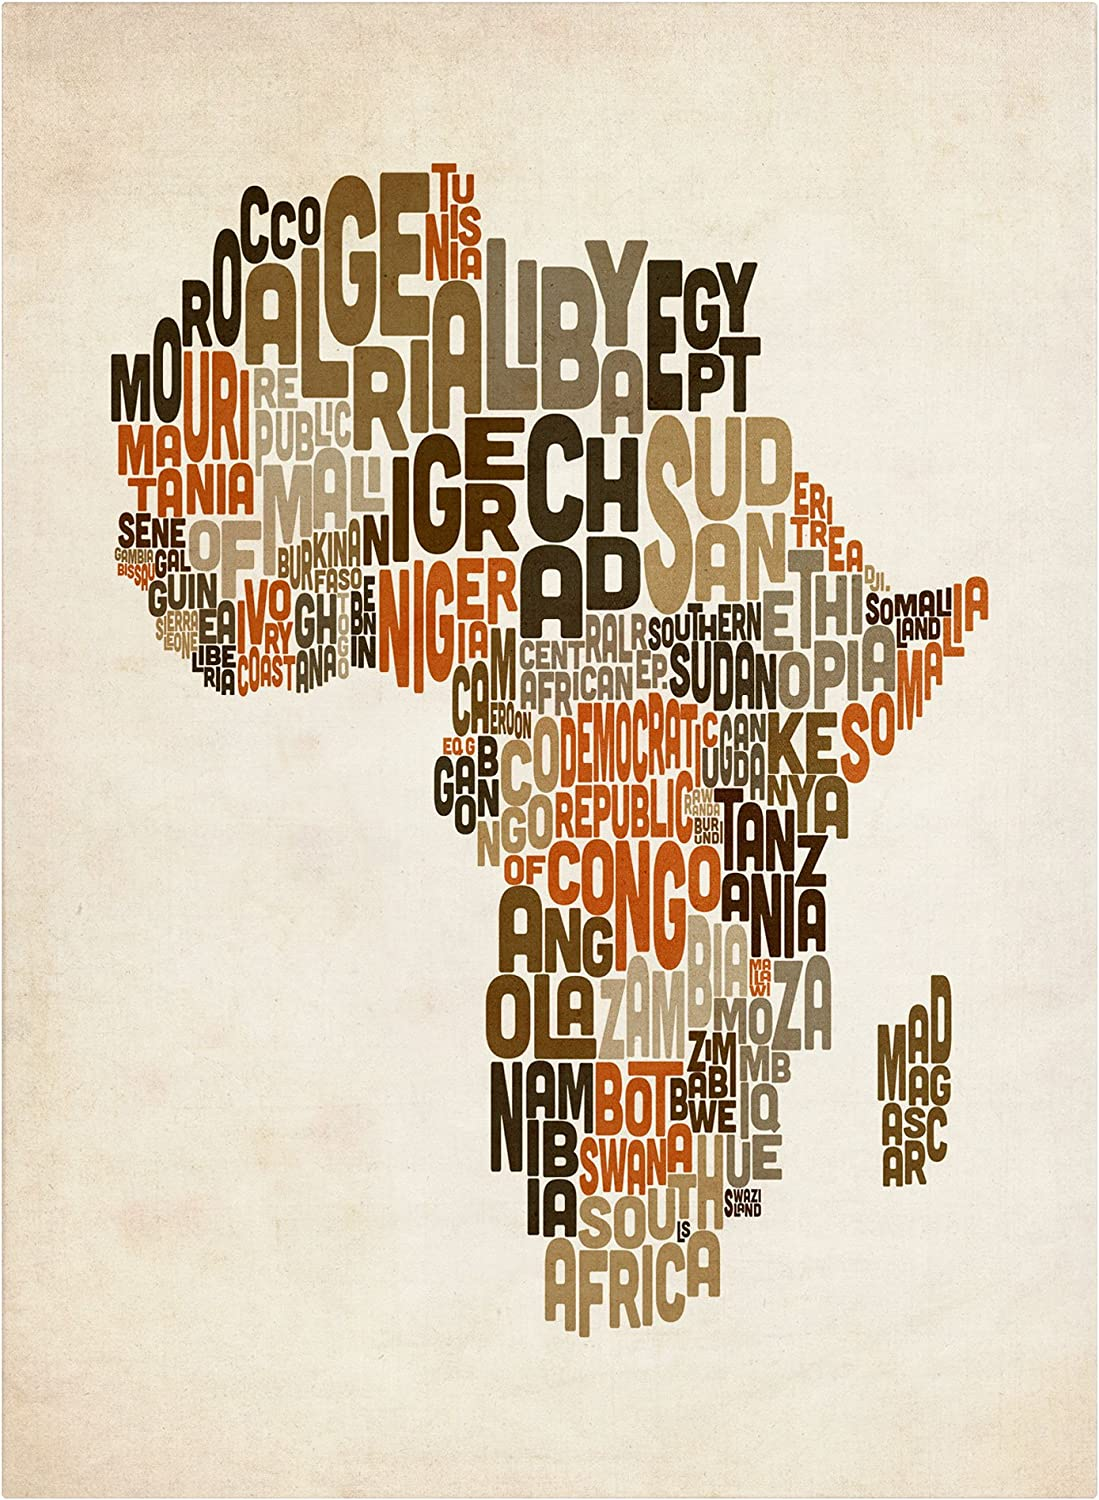 Africa Map Art Amazon.com: Africa Text Map by Michael Tompsett work, 16 by 24